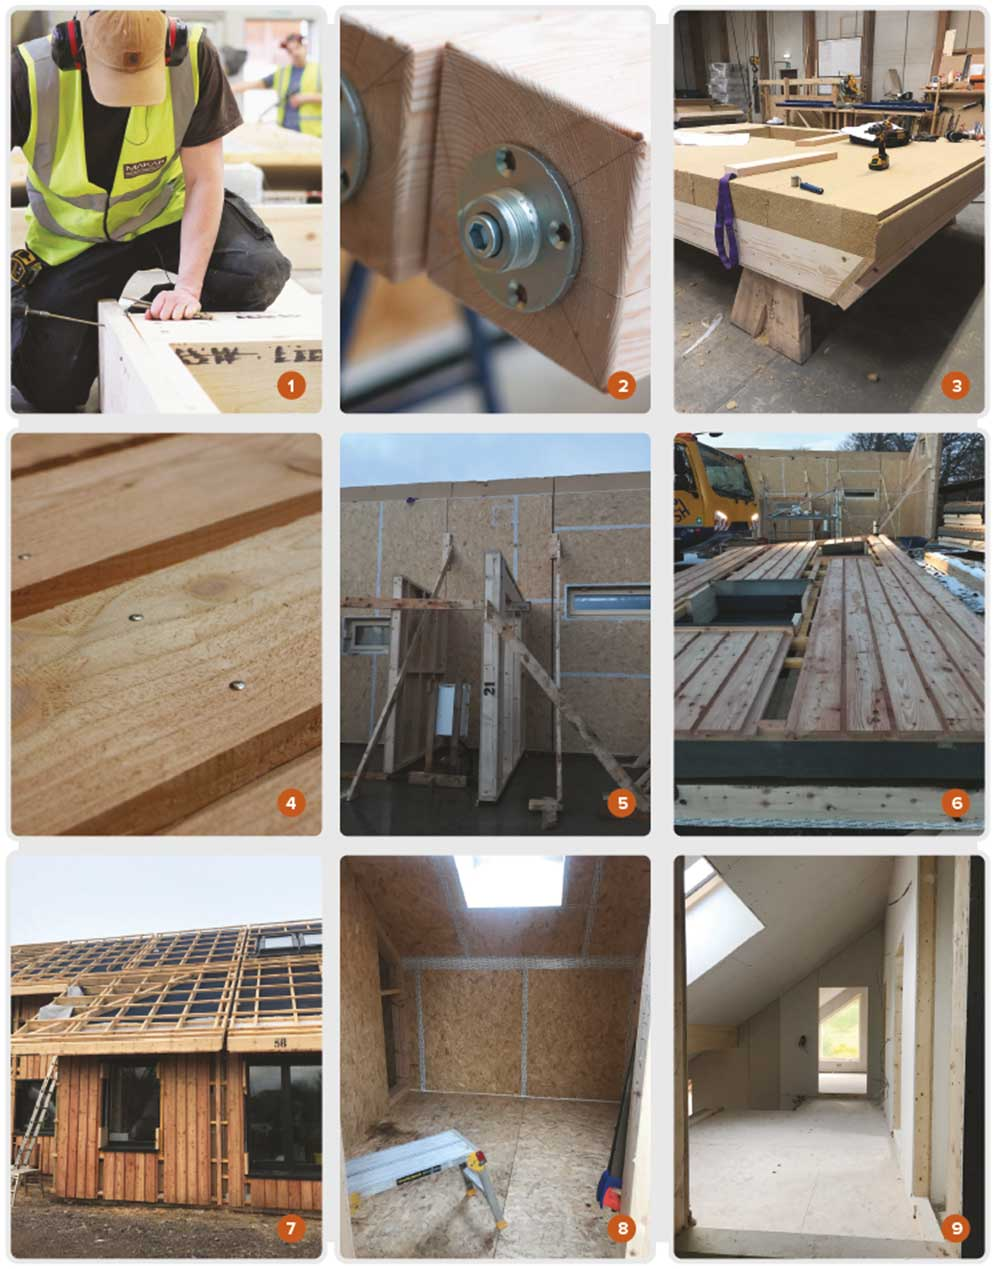 The Makar prefabricated timber frame system being built in their workshop, showing 1 the frame, 2 the postbase, 3 the roof panel, and 4 the cladding; 5 & 6 assembly of the frame on-site; 7 the panels are built complete with insulation, doors, windows, roof and cladding; 8 18 mm OSB board was used as an internal airtight layer, and taped at all junctions; 9 the walls are fi nished inside with plasterboard enclosing a woodfi bre-insulated service cavity.